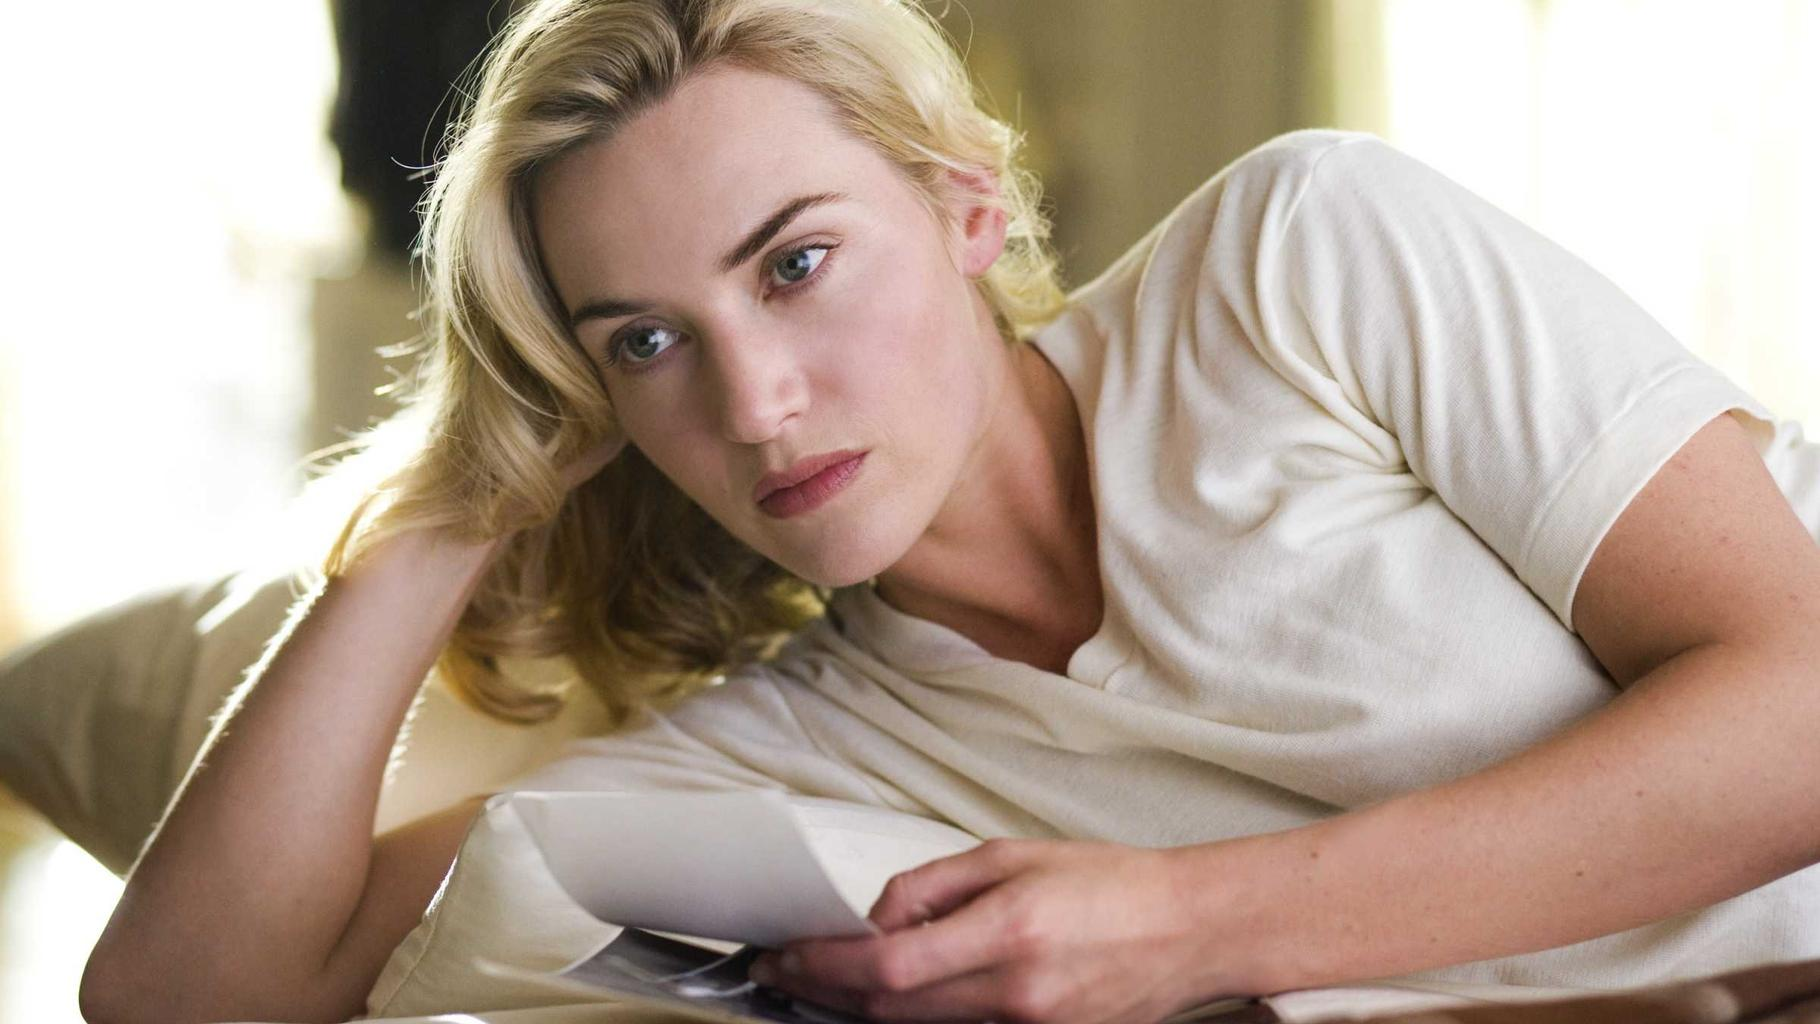 50 sexiest actresses top 20 Famous